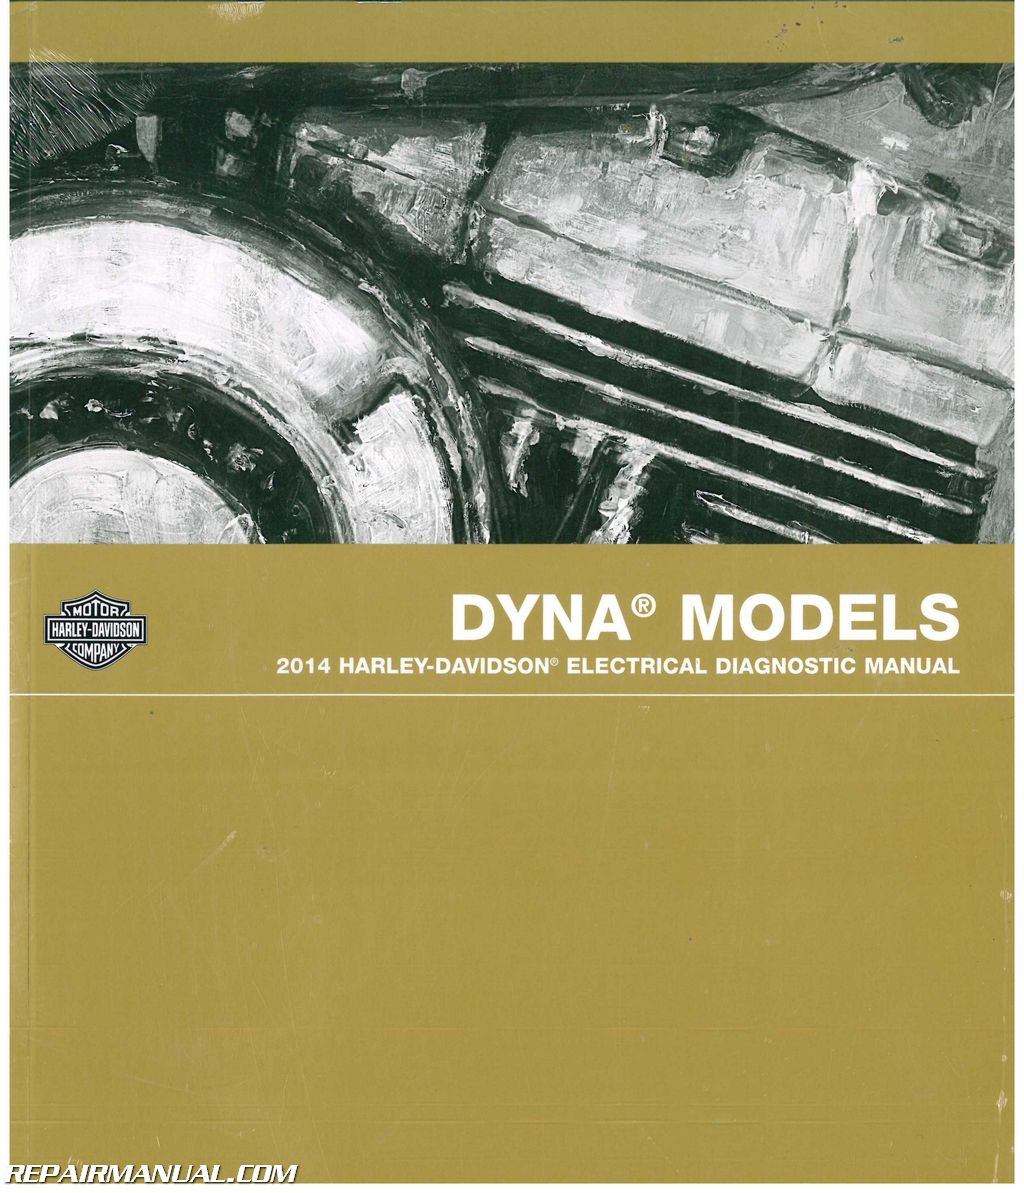 hight resolution of 2014 harley davidson dyna motorcycle electrical diagnostic manual